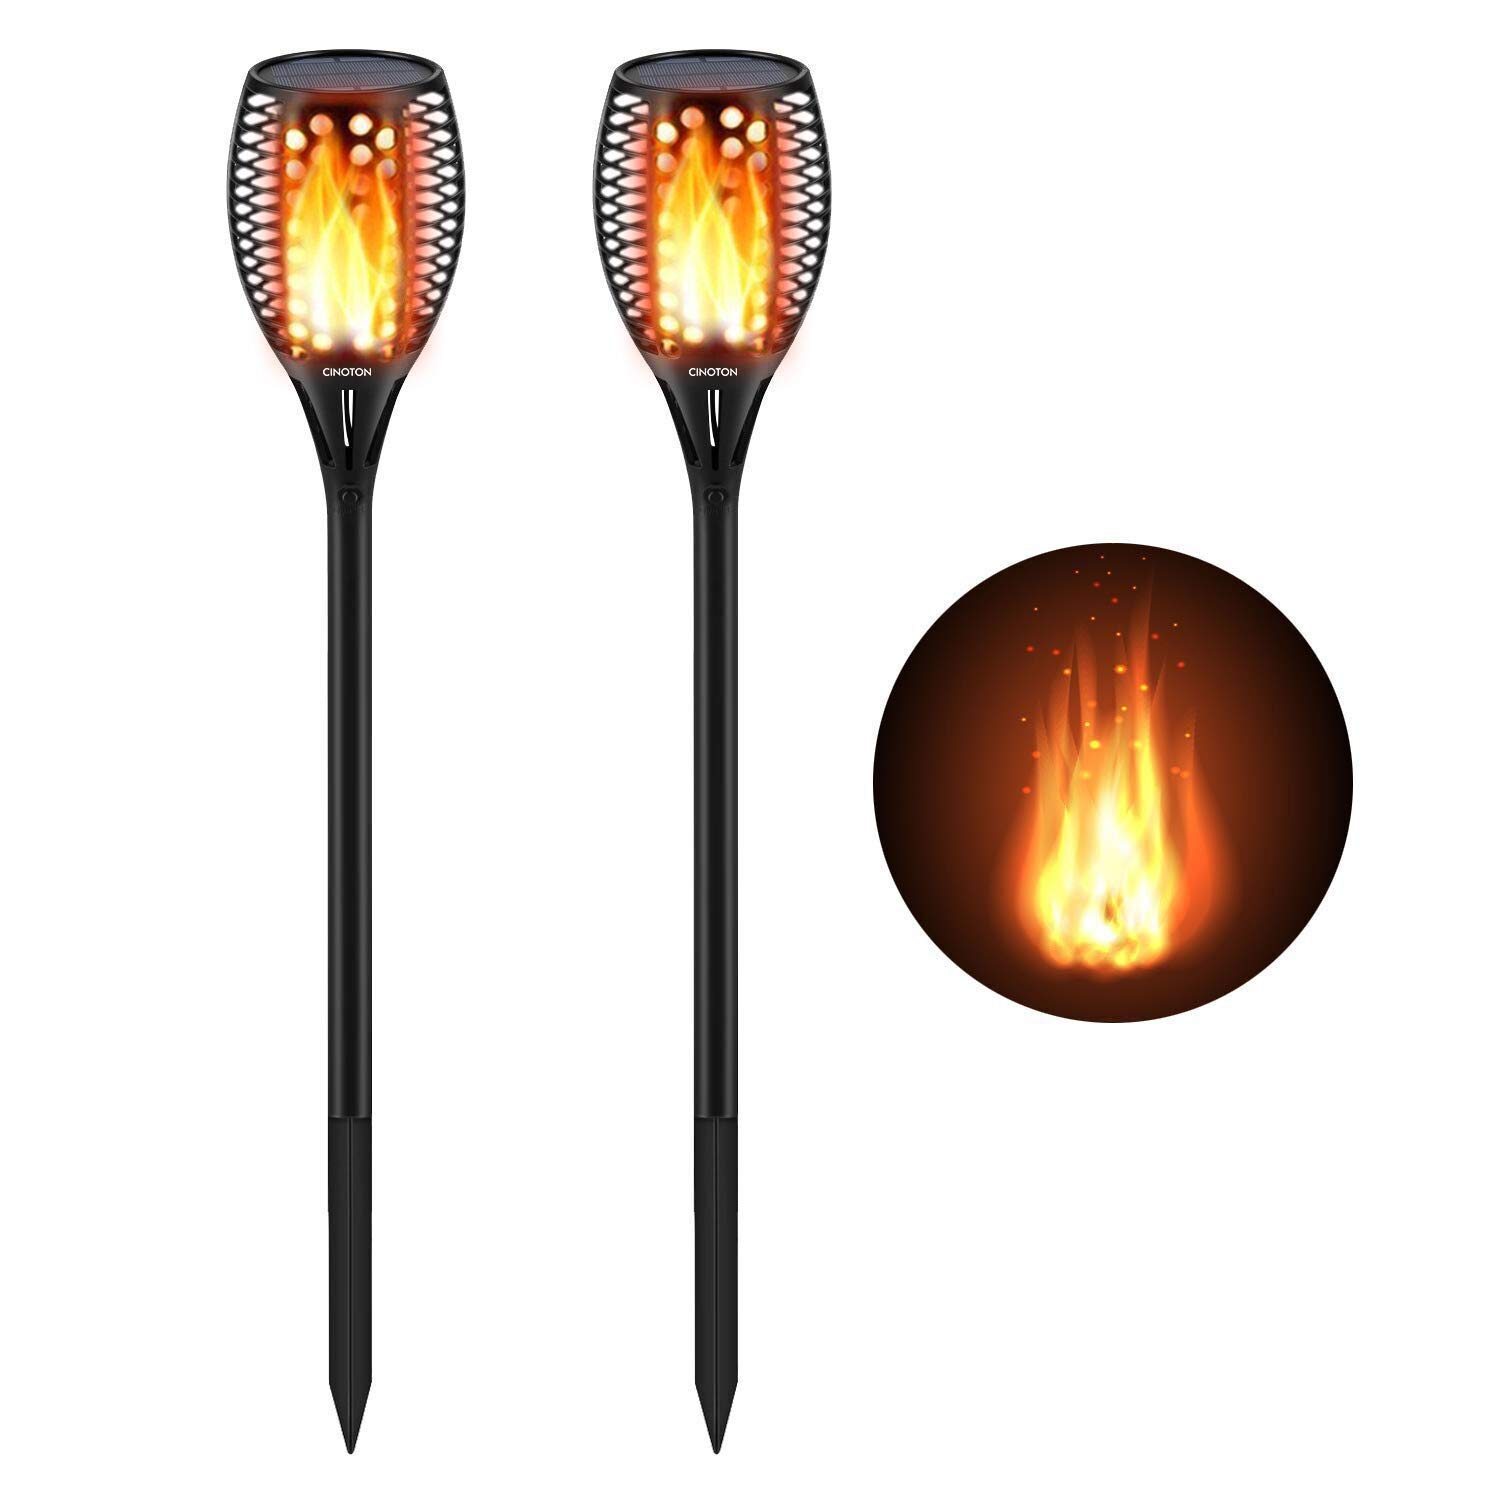 Cinoton Solar Light,Path Torches Dancing Flame Lighting 96 LED Dusk to Dawn Flickering Torches Outdoor Waterproof garden decorations